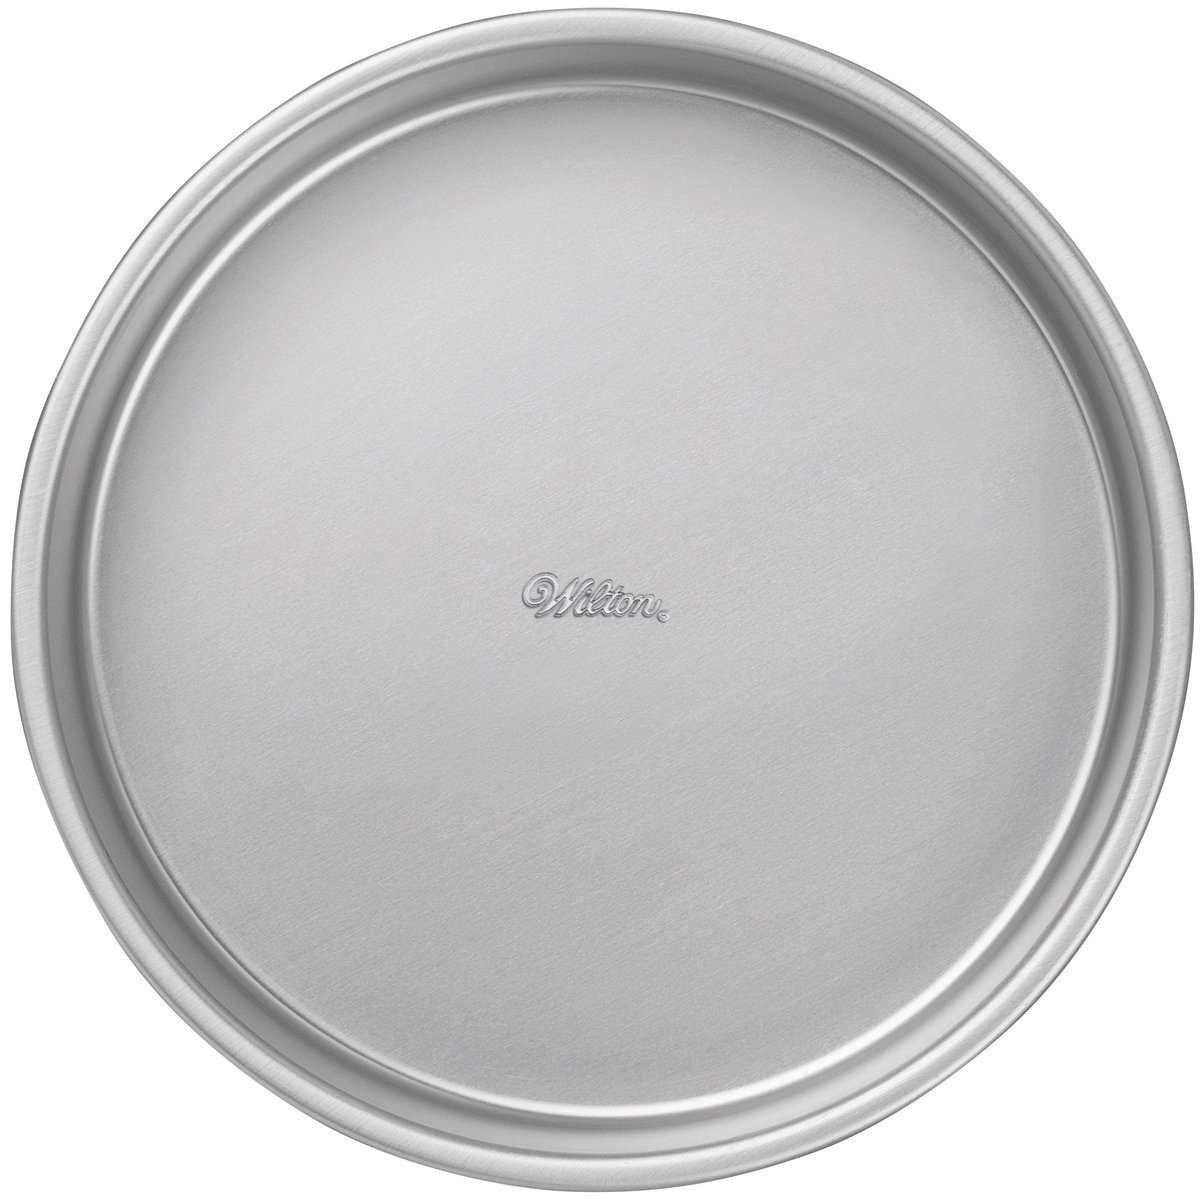 Amazon.com: Wilton 2105-2207 Performance Aluminum Cake, 10-Inch PERF PAN 10X2 ROUND, (Renewed): Kitchen & Dining